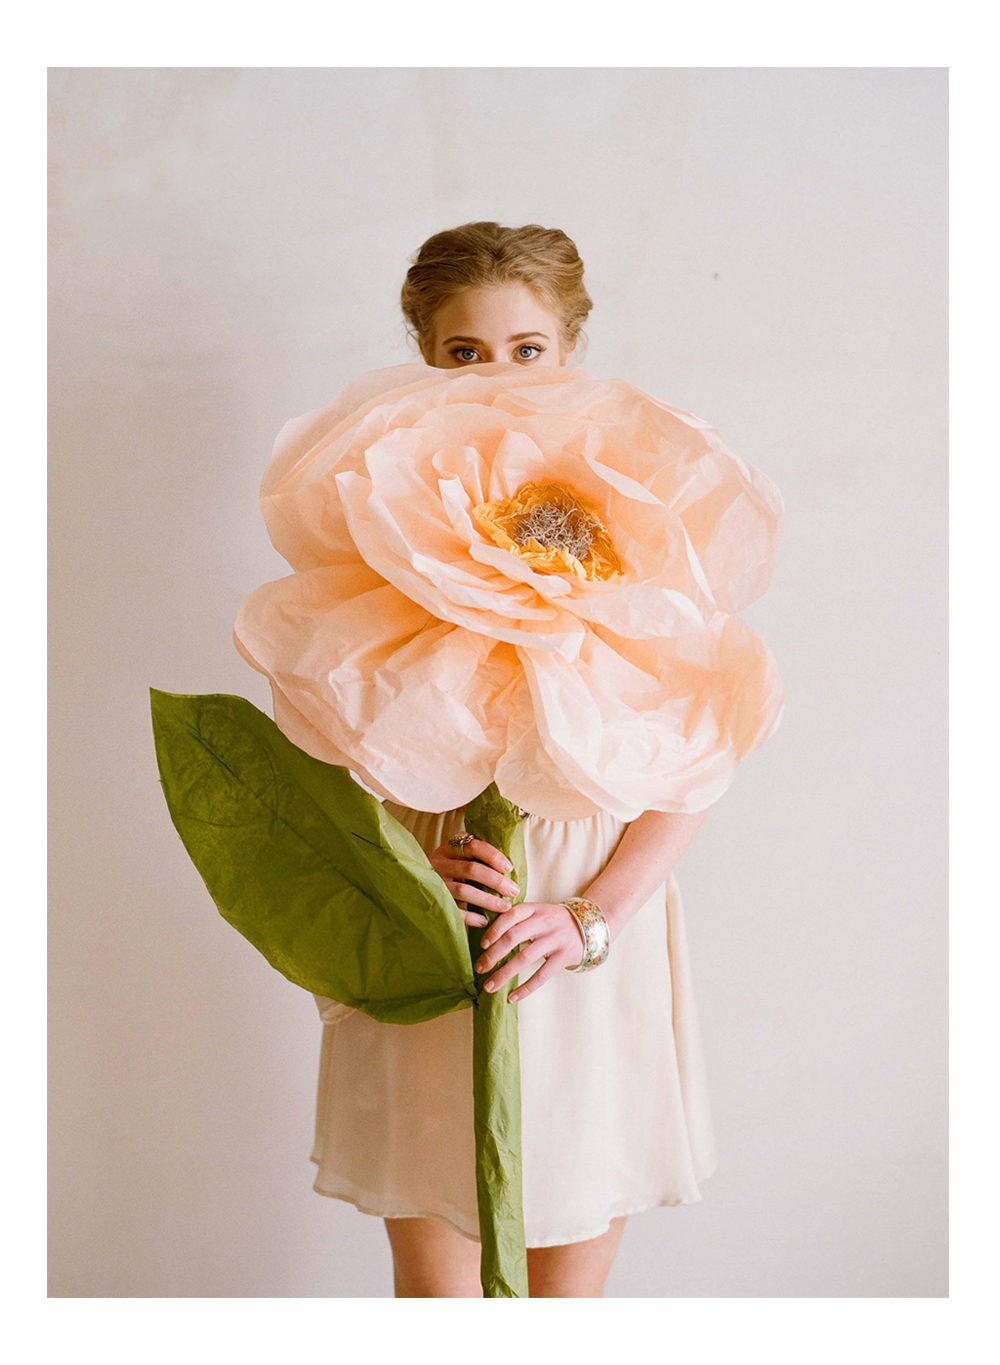 woman holding giant peach paper flower with green stem